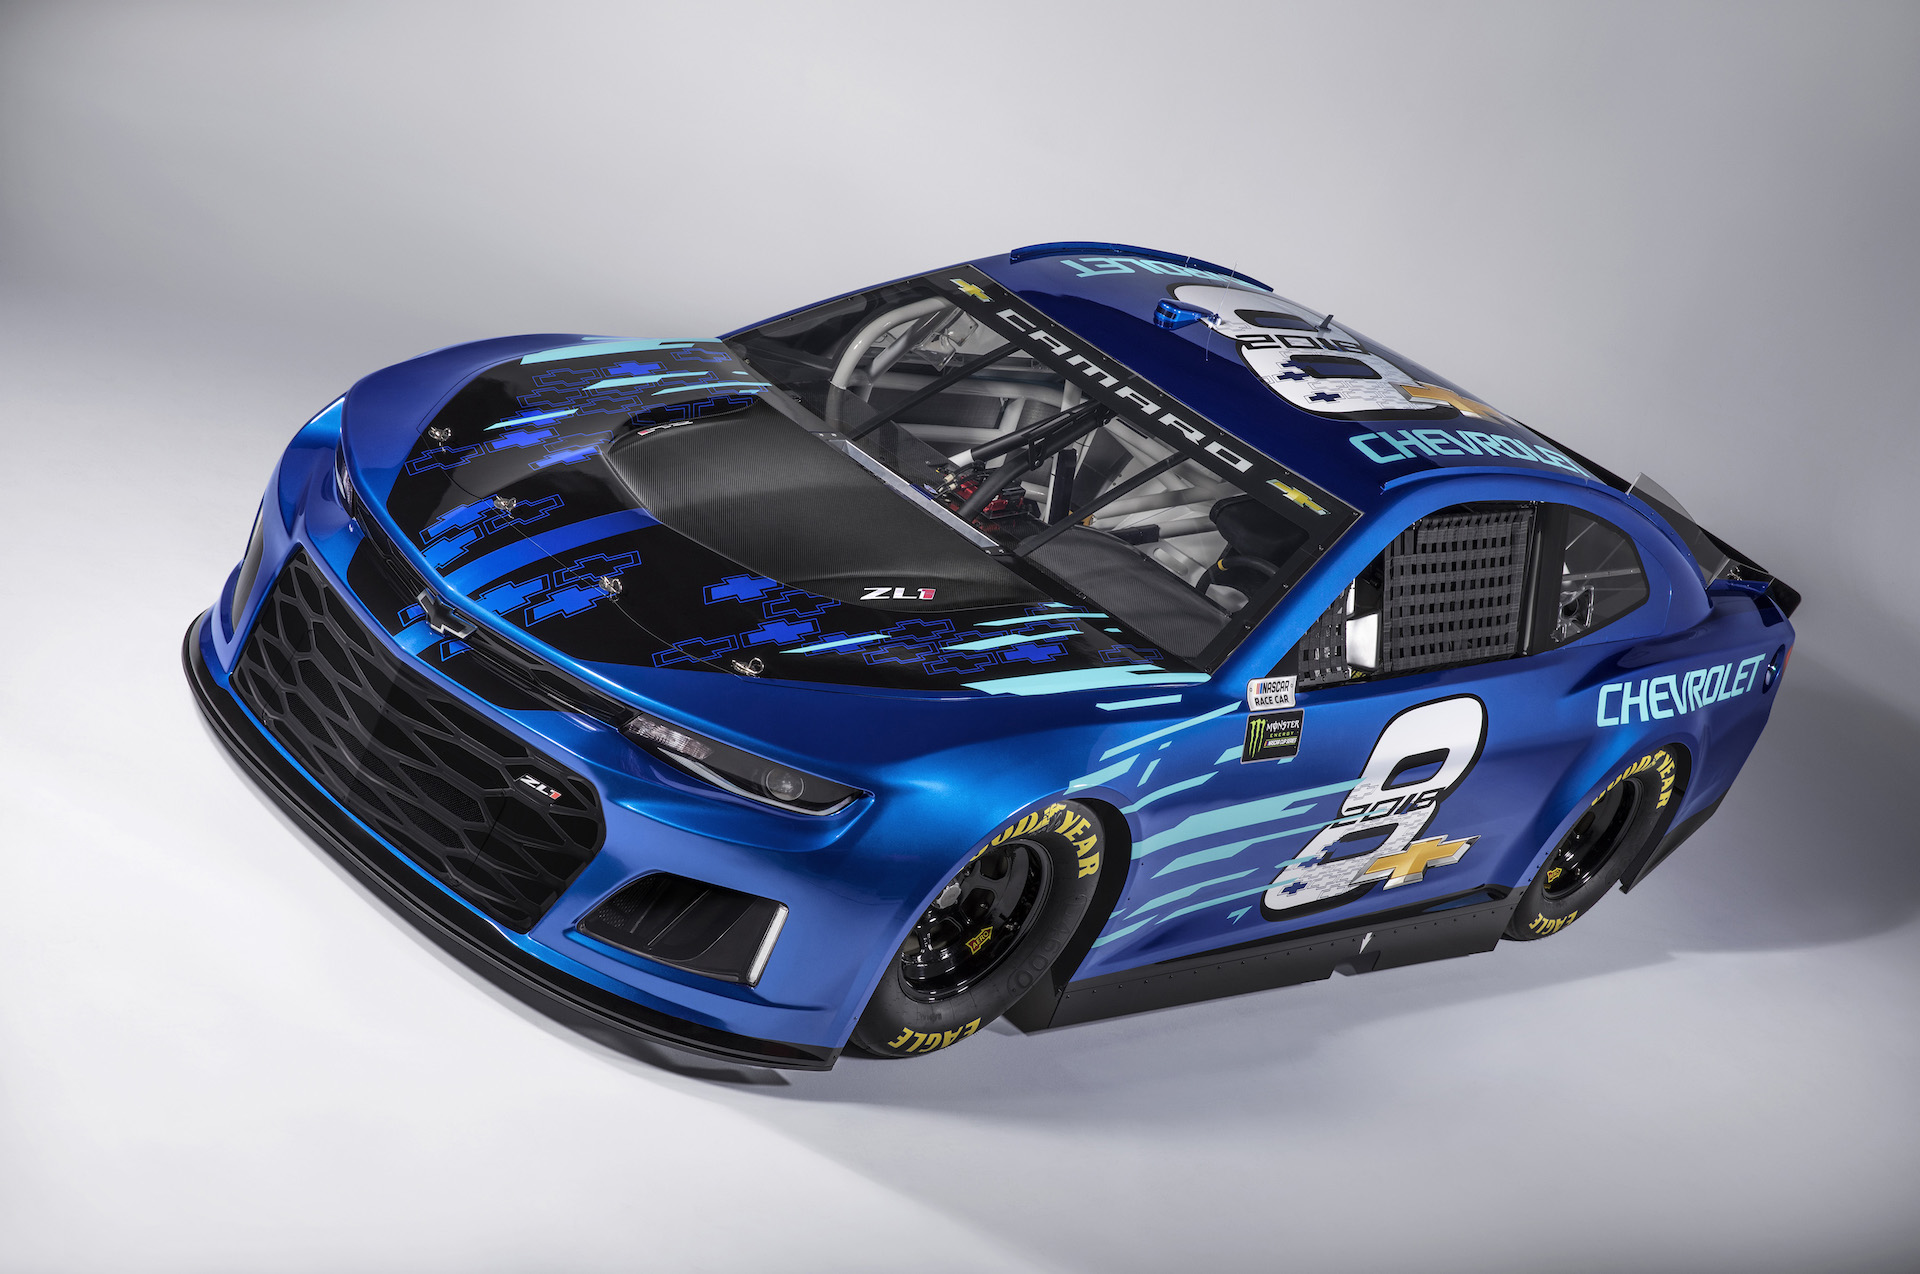 Chevrolet Camaro ZL1 to be next year's NASCAR Cup car